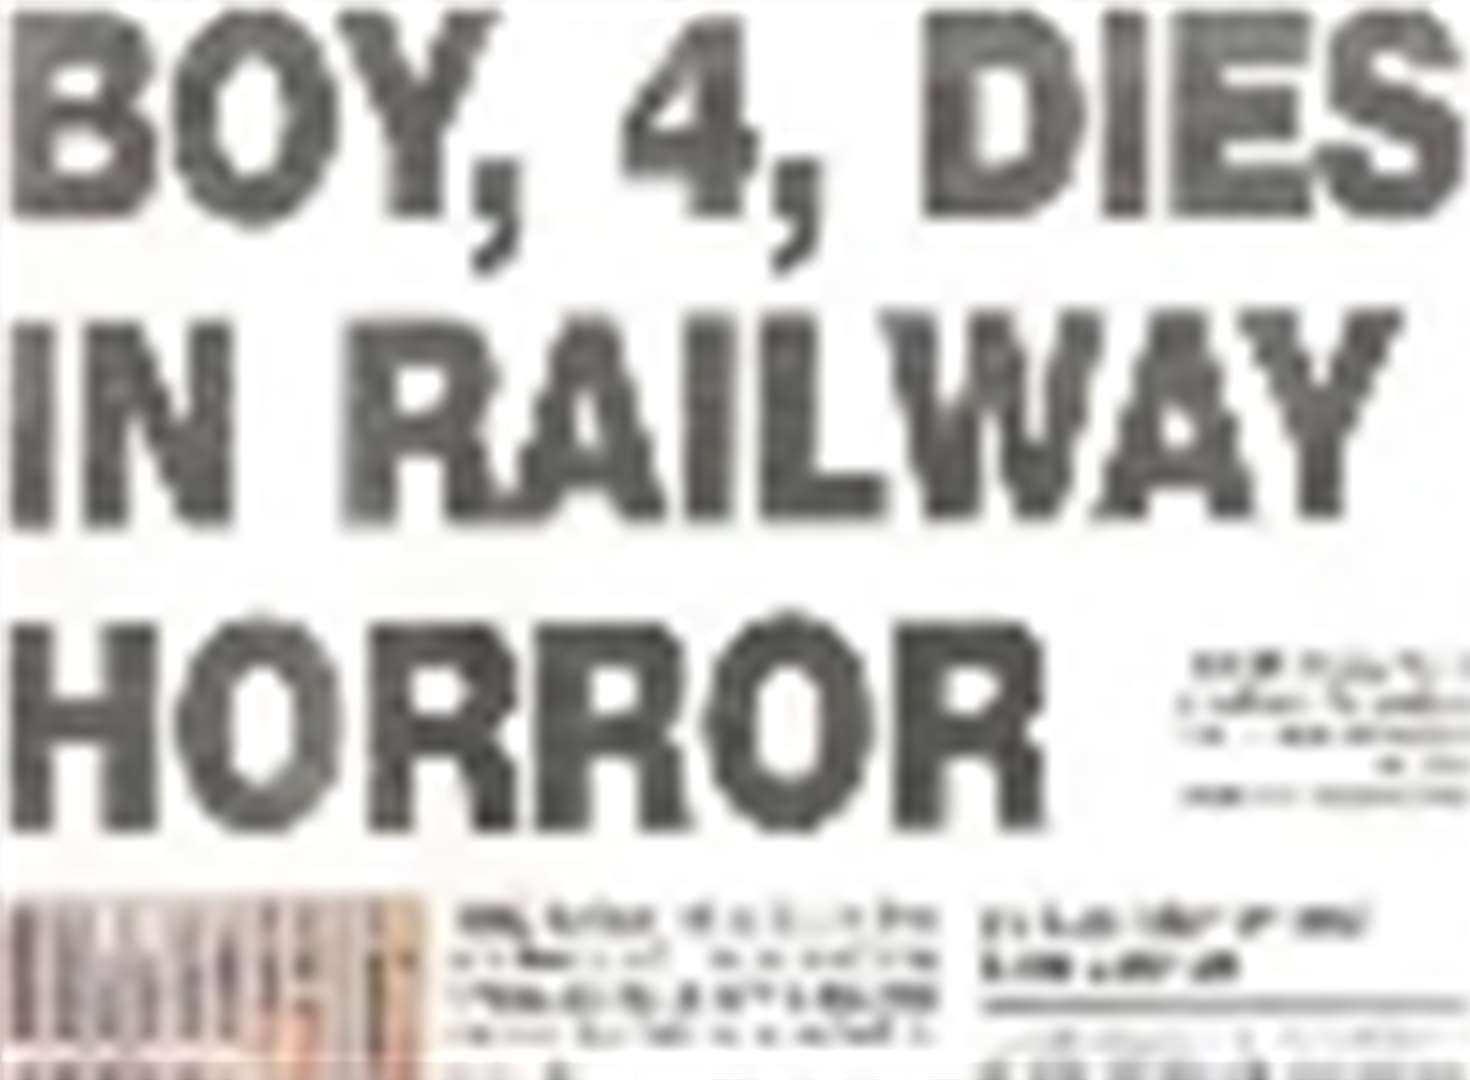 Firms plead guilty over toddler's rail death